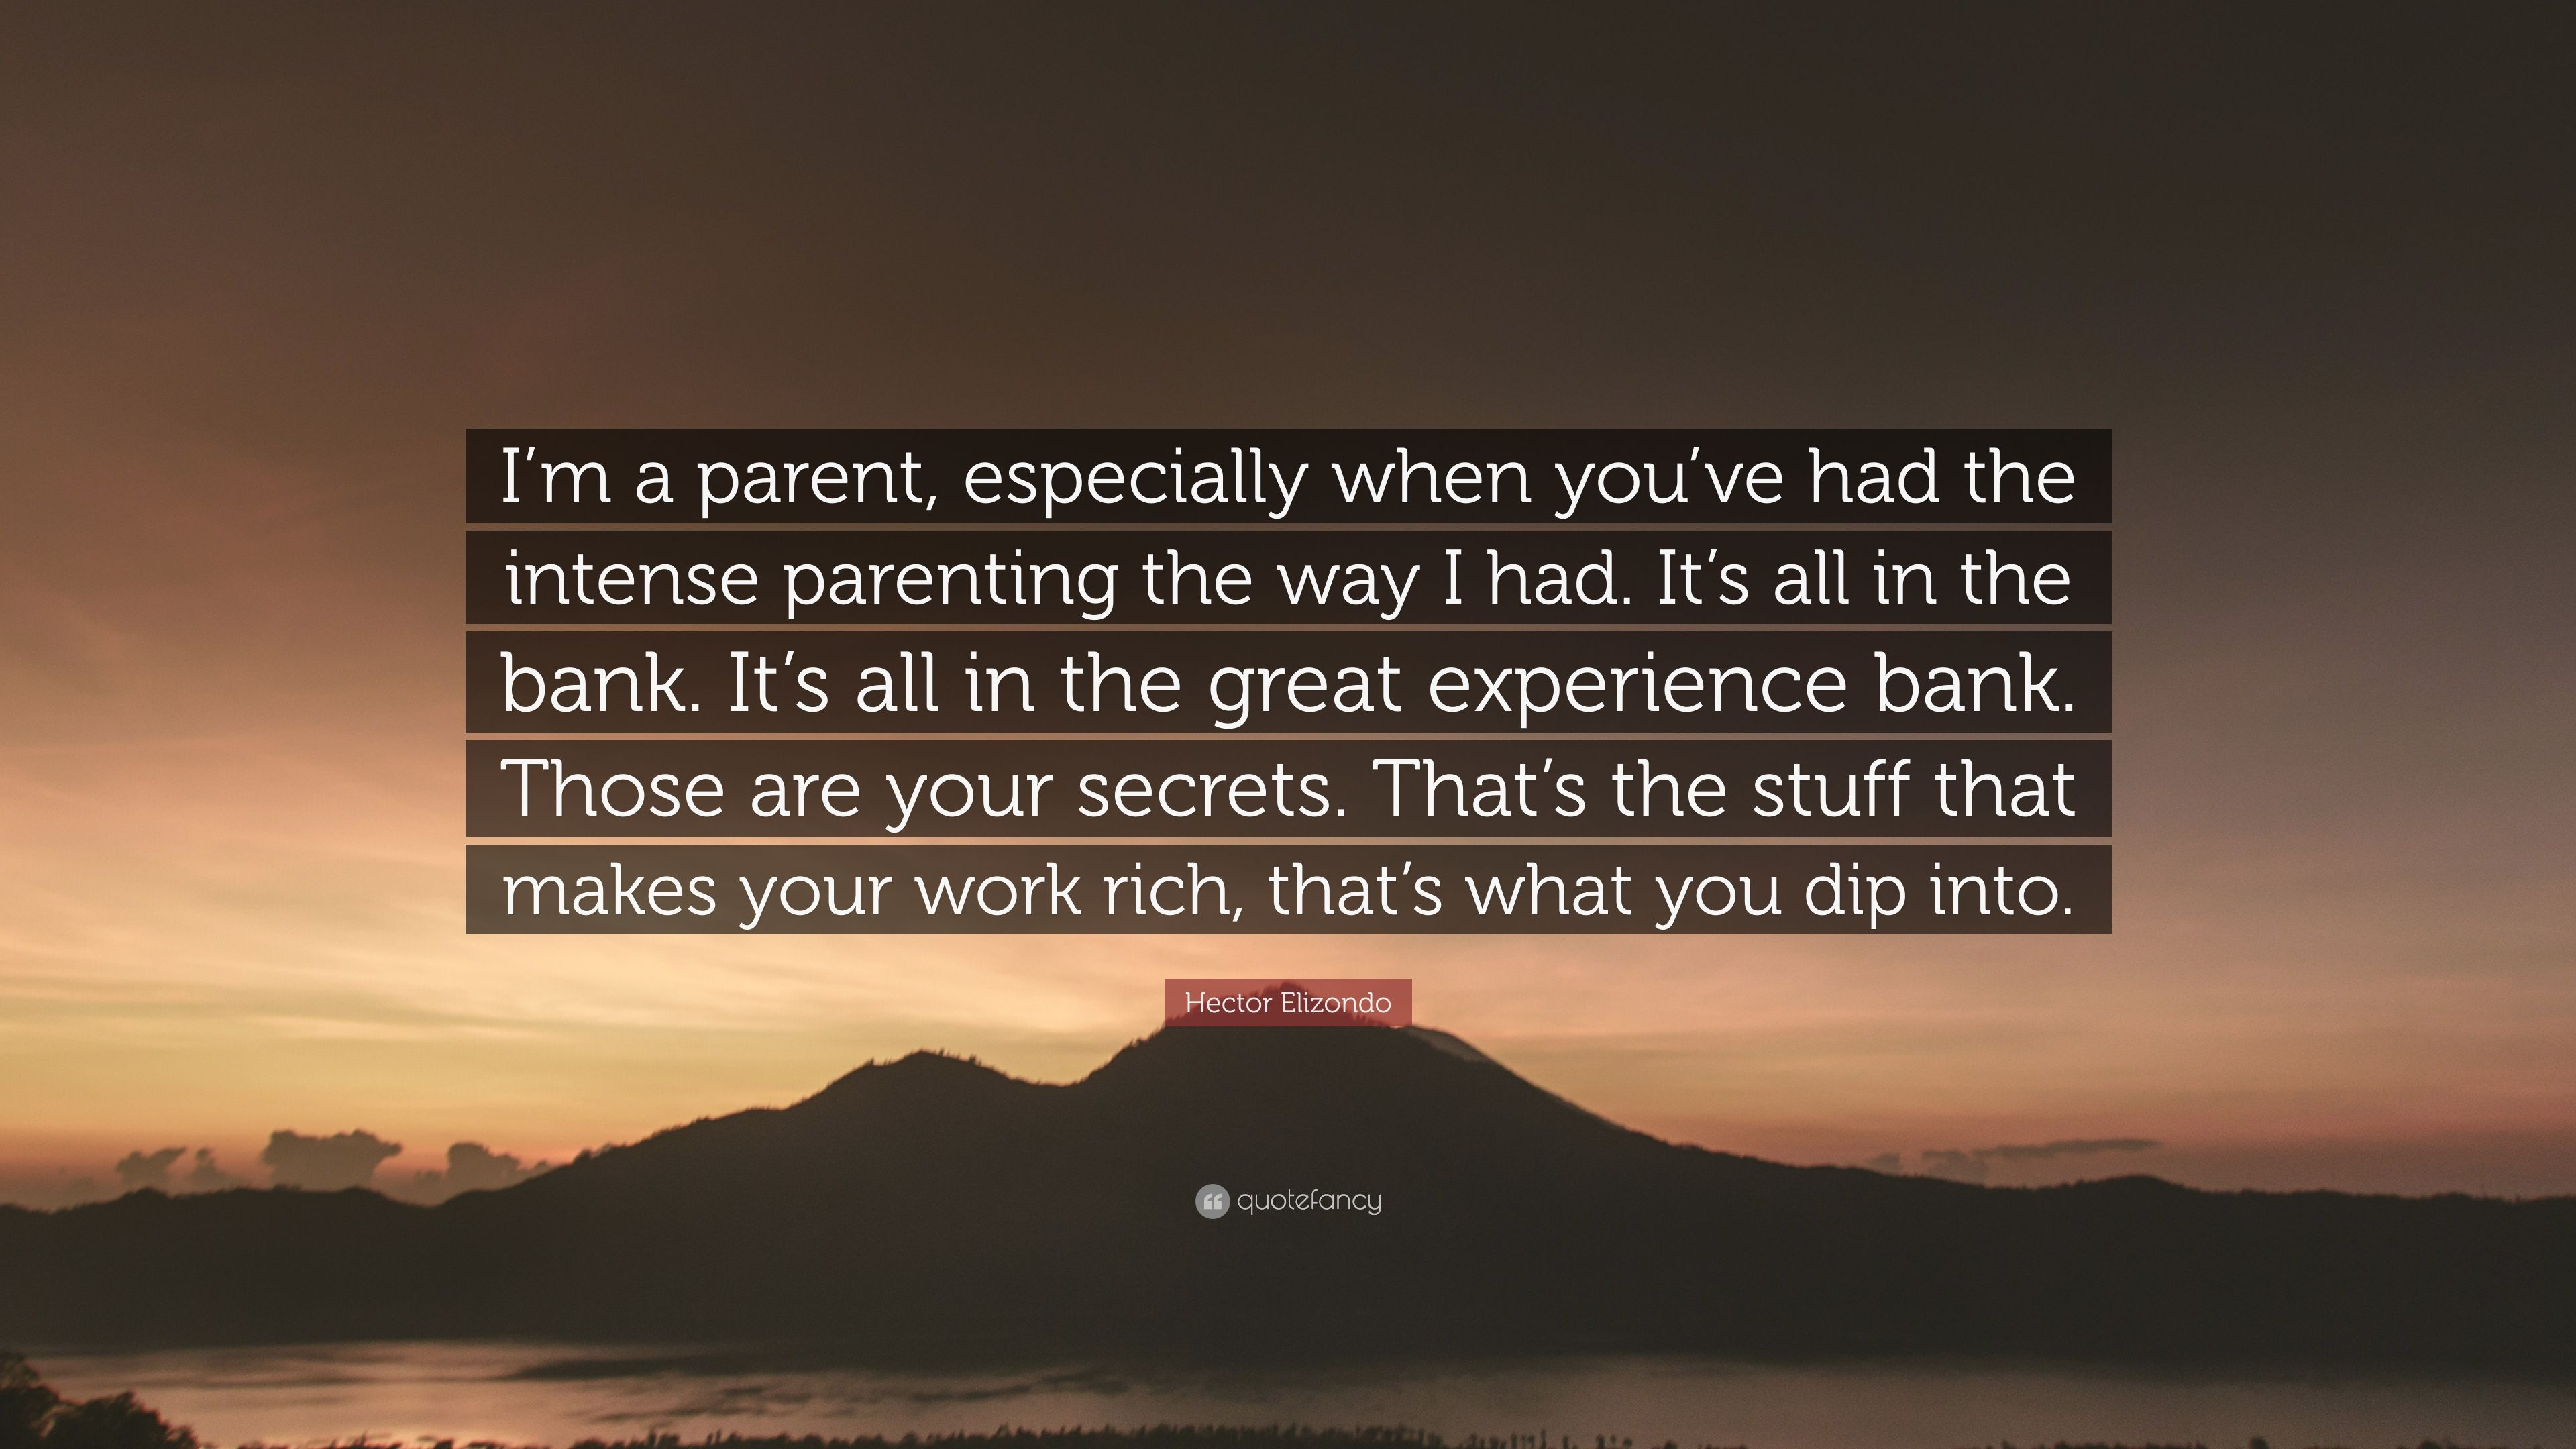 Hector Elizondo Quote I M A Parent Especially When You Ve Had The Intense Parenting The Way I Had It S All In The Bank It S All In The Grea 7 Wallpapers Quotefancy